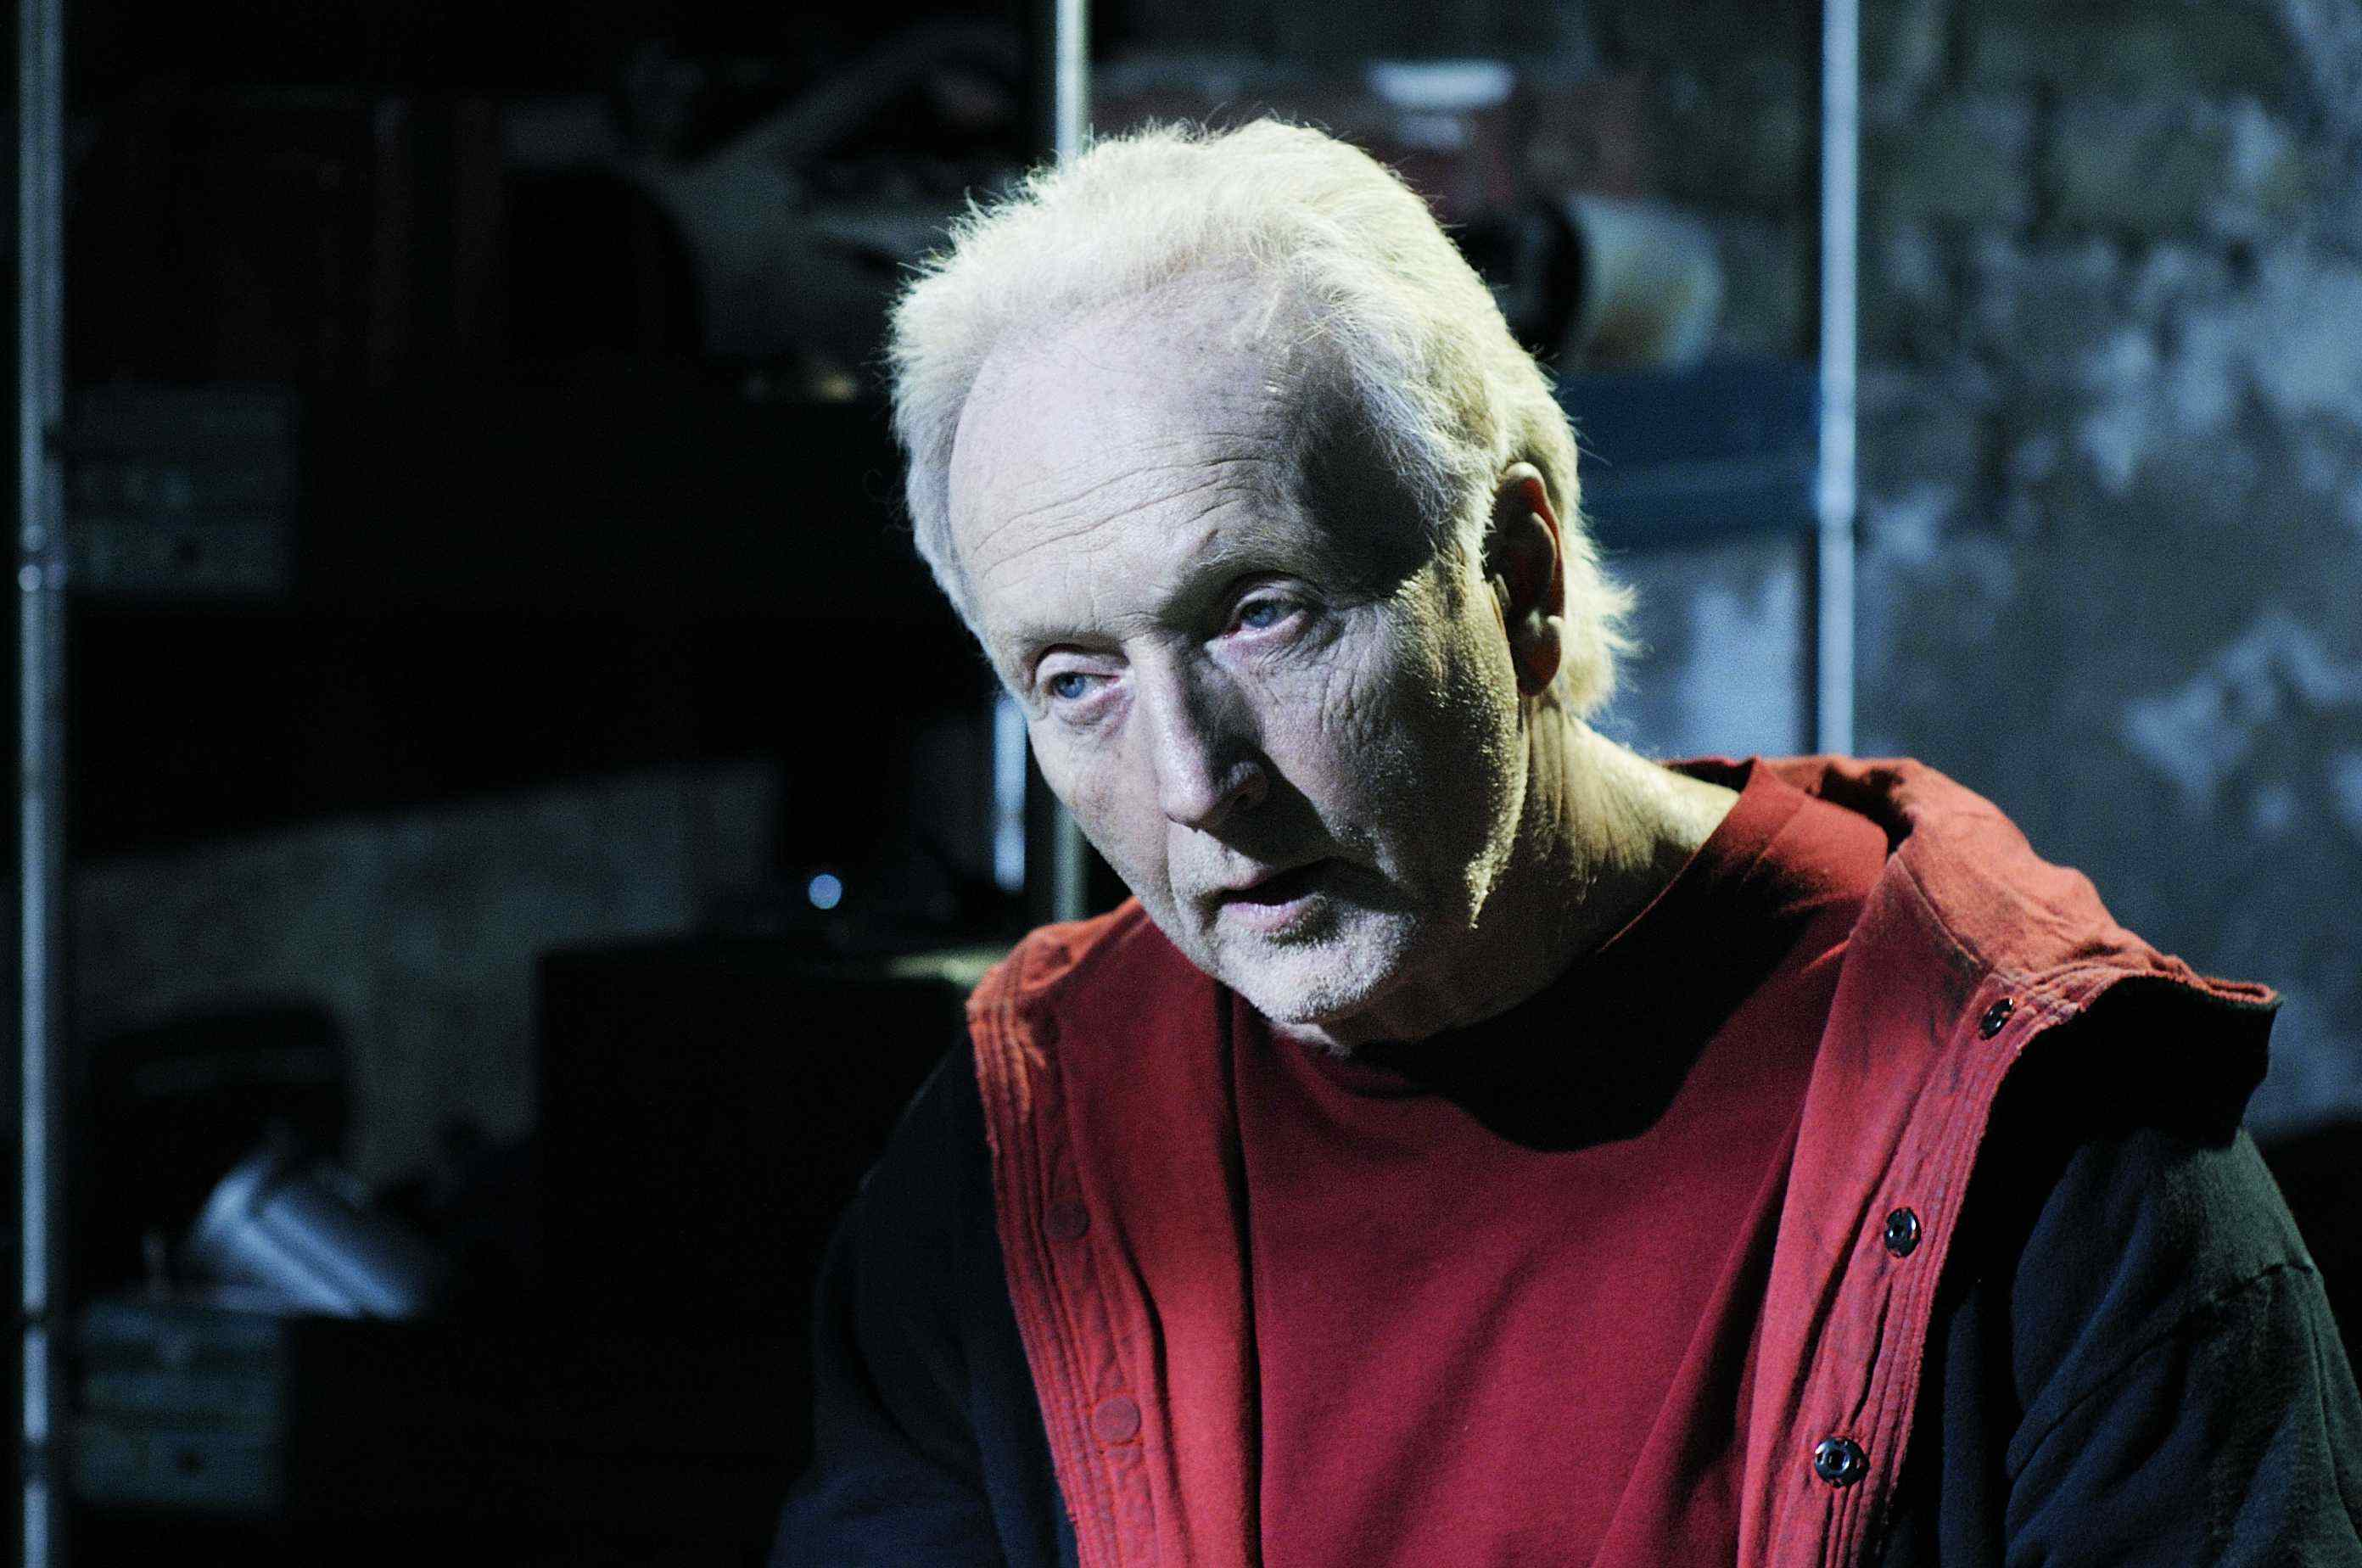 Jigsaw from the Saw Films